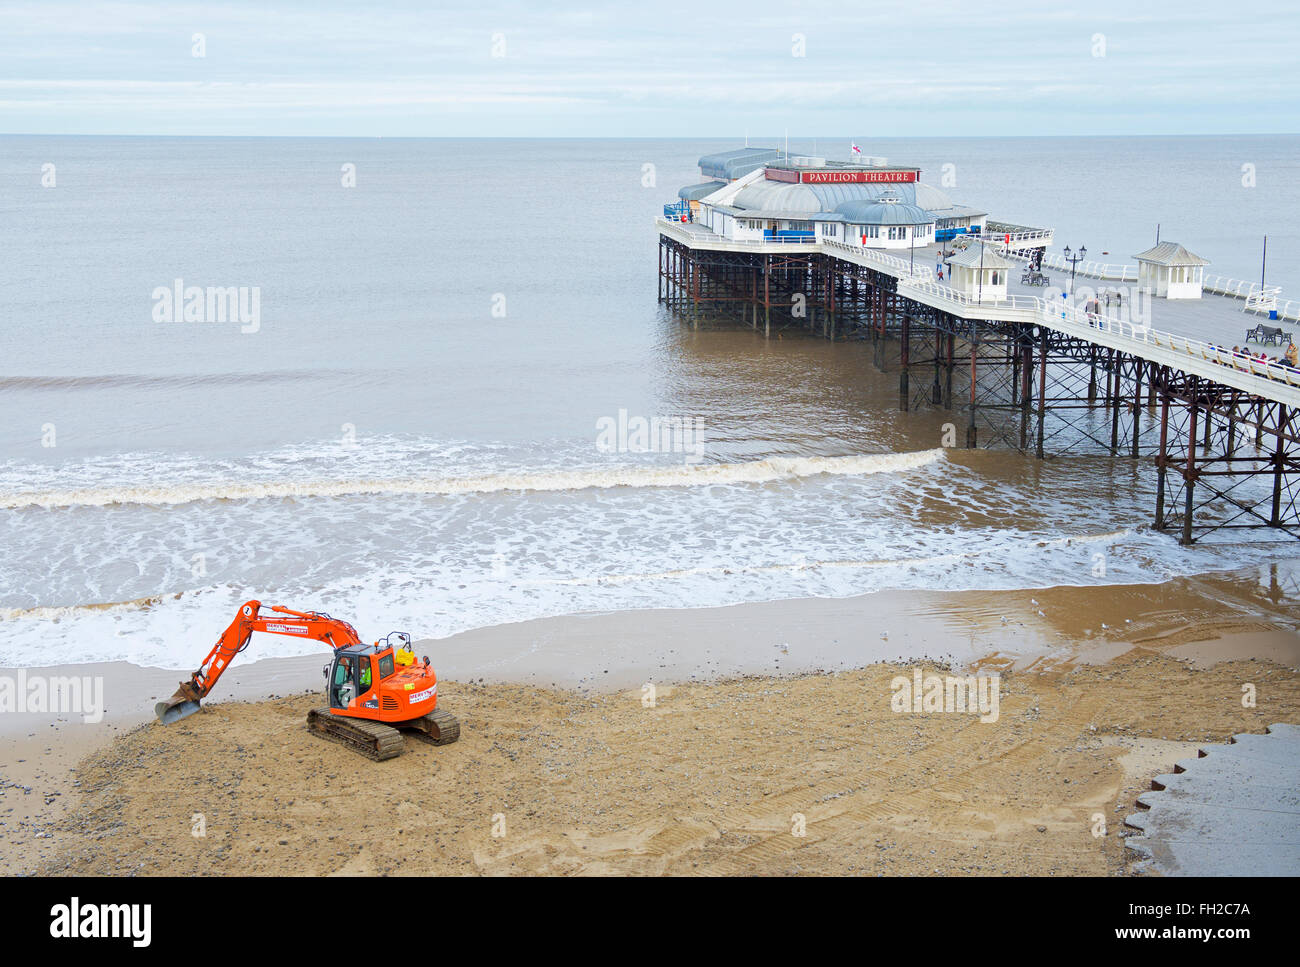 Digger moving sand next to the pier, Cromer, Norfolk, England UK Stock Photo